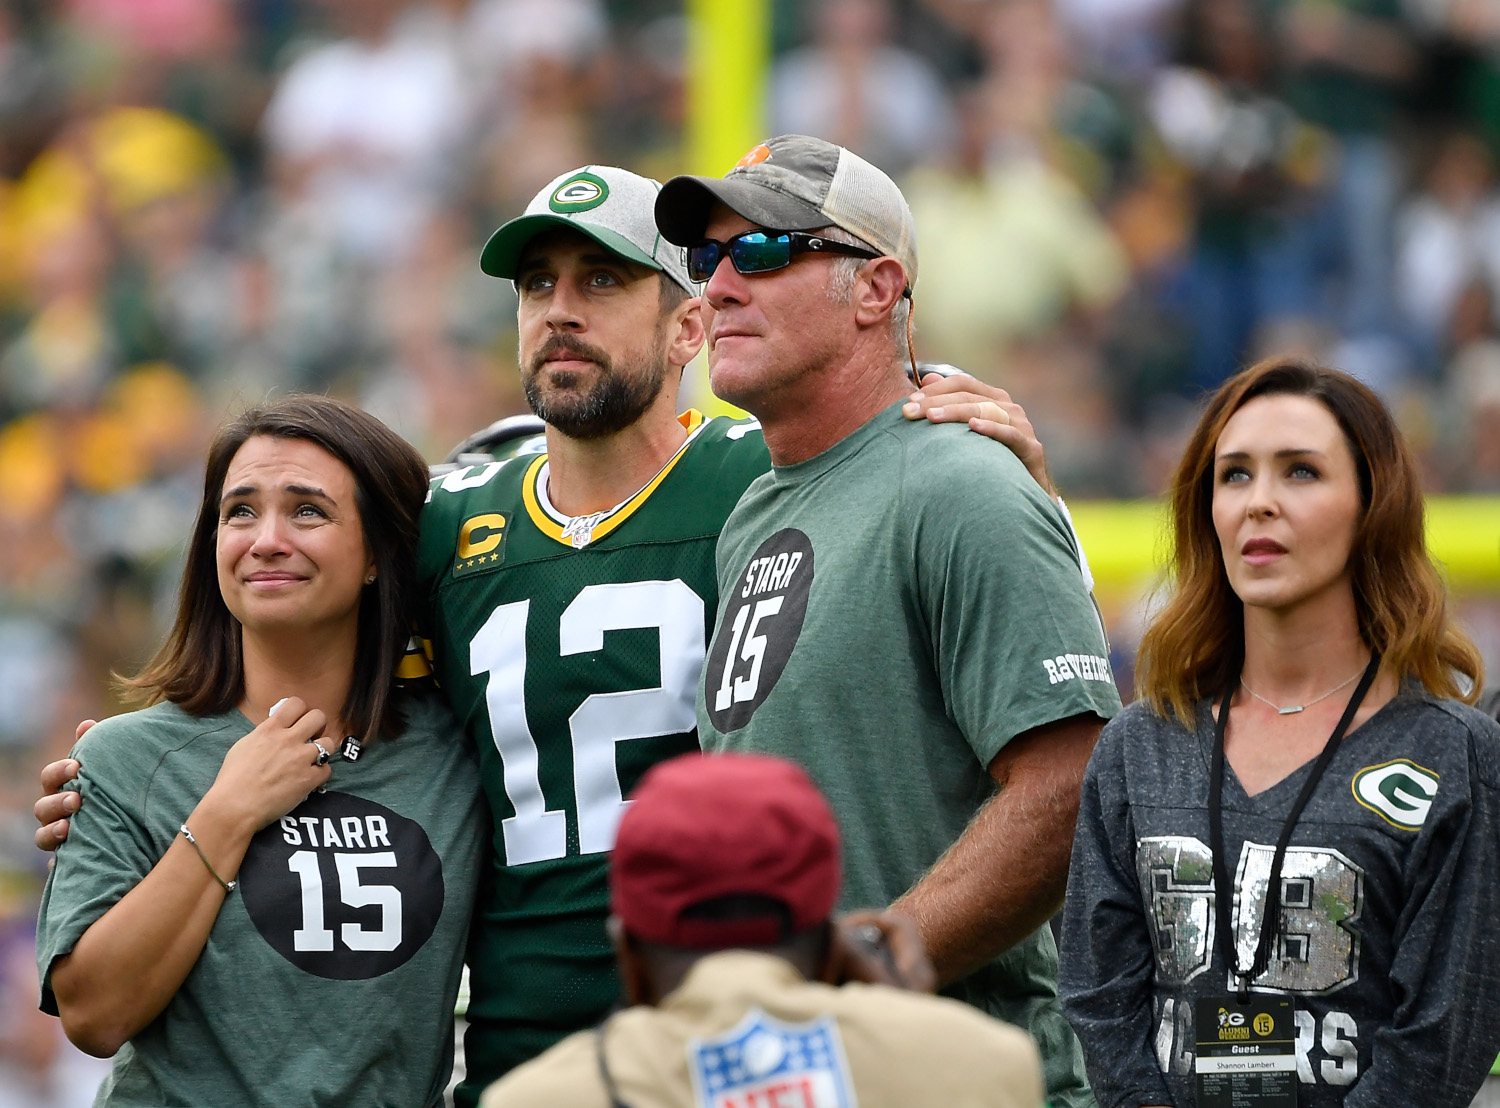 Green Bay Packers quarterbacks Aaron Rodgers and Brett Favre